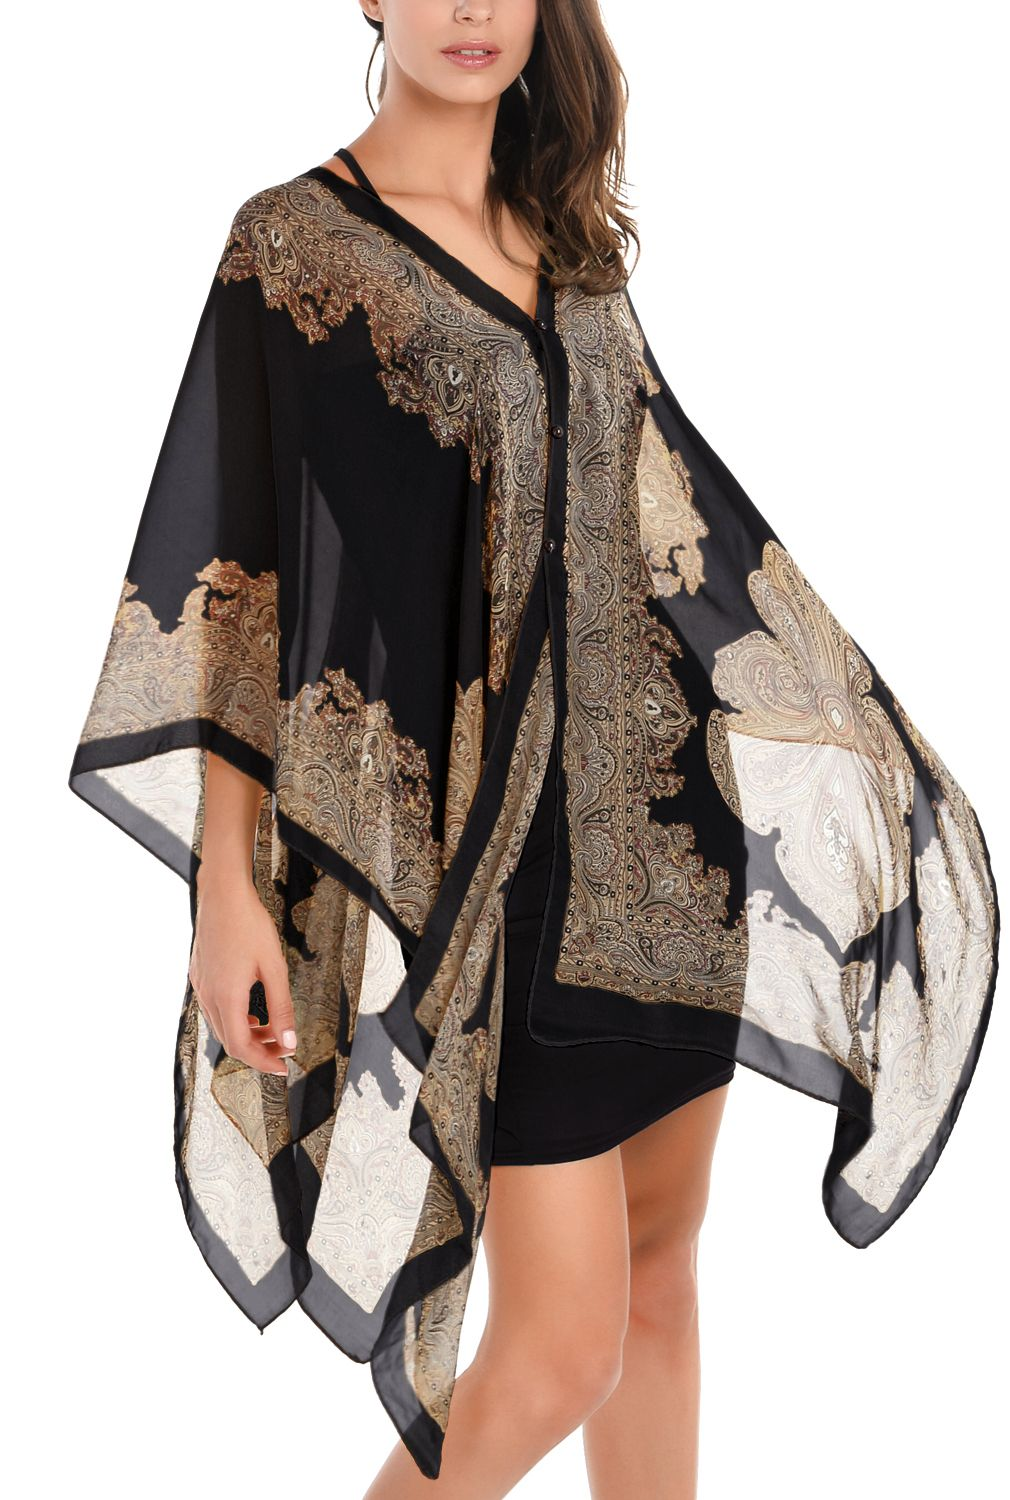 2e52187cbe8 Womens-Sexy-Shawl-Bikini-Cover-Up-Swimwear-Beach-Dress-Chiffon-Poncho-Top -Kaftan